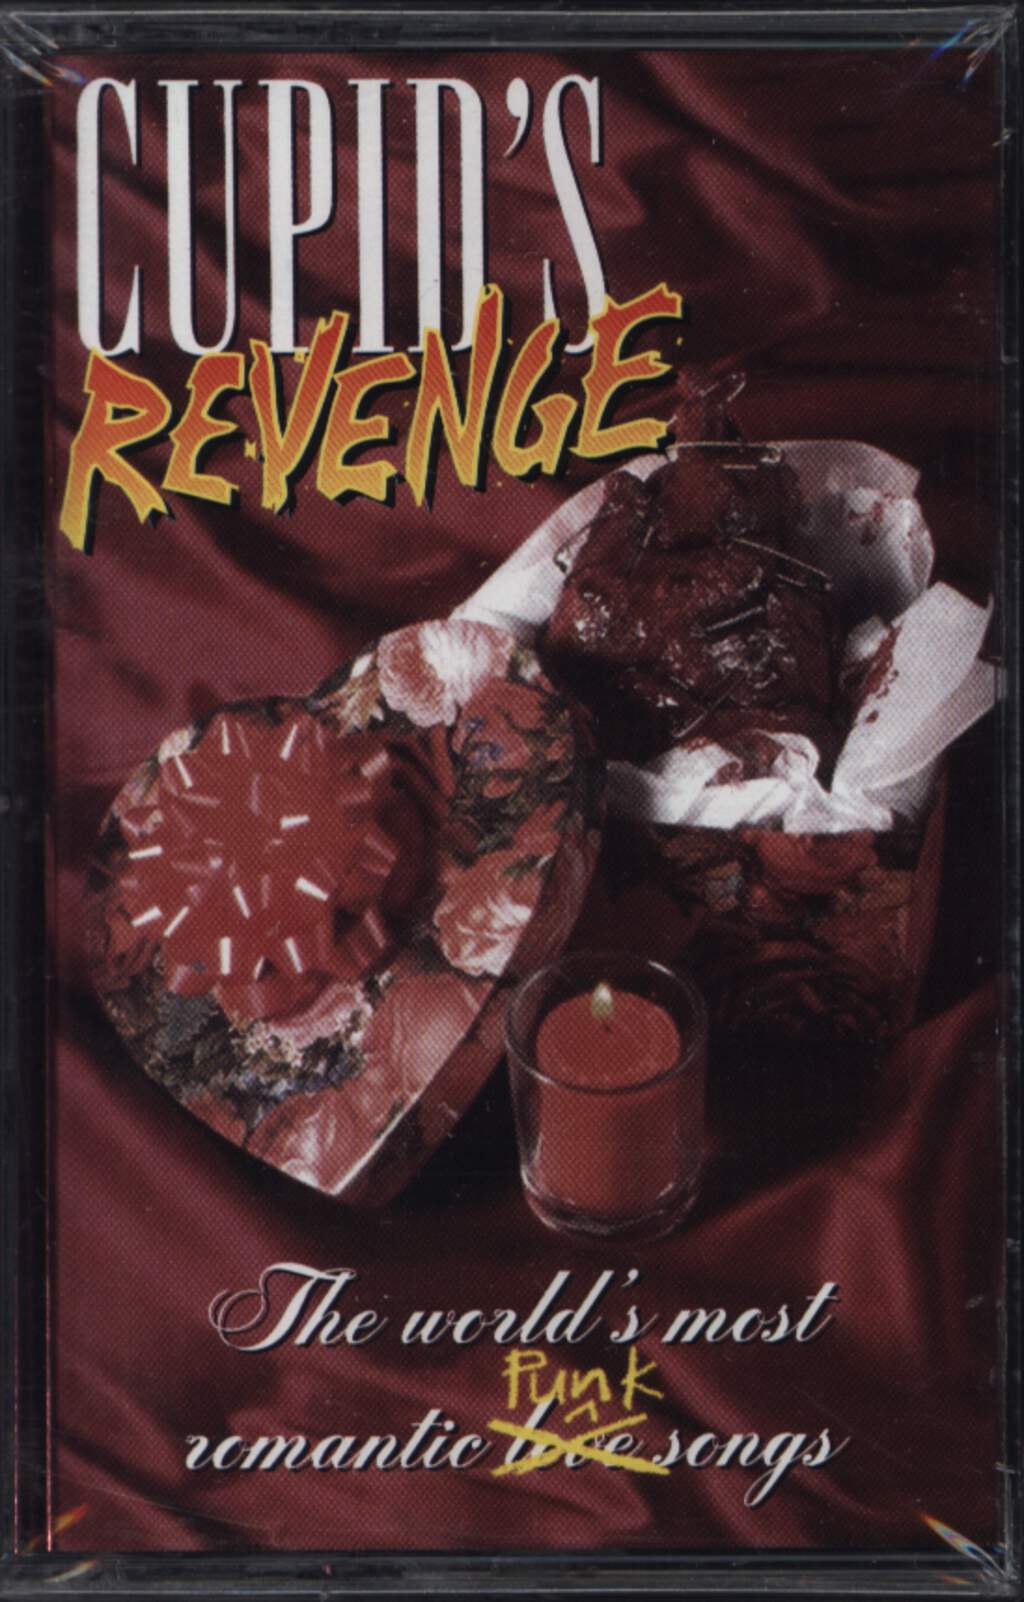 Various: Cupid's Revenge - The World's Most Romantic Punk Songs, Compact Cassette